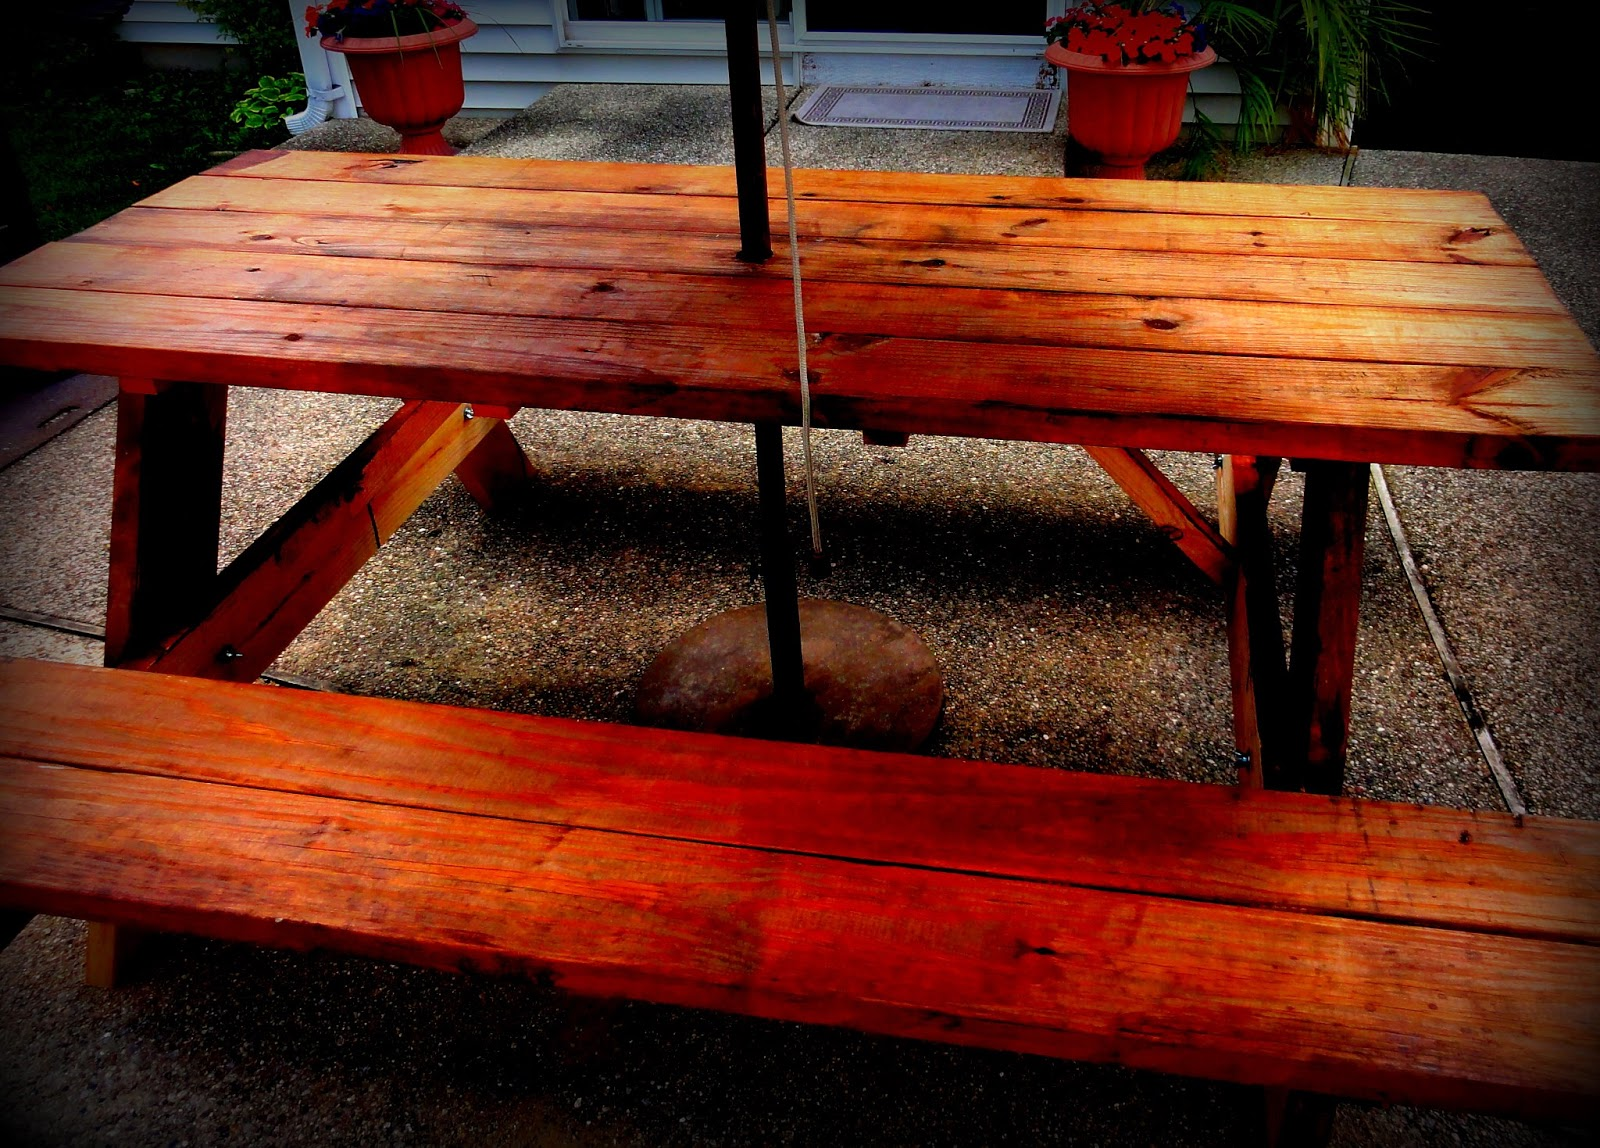 The Picnic Table That Will Never Be Used - How to stain a picnic table